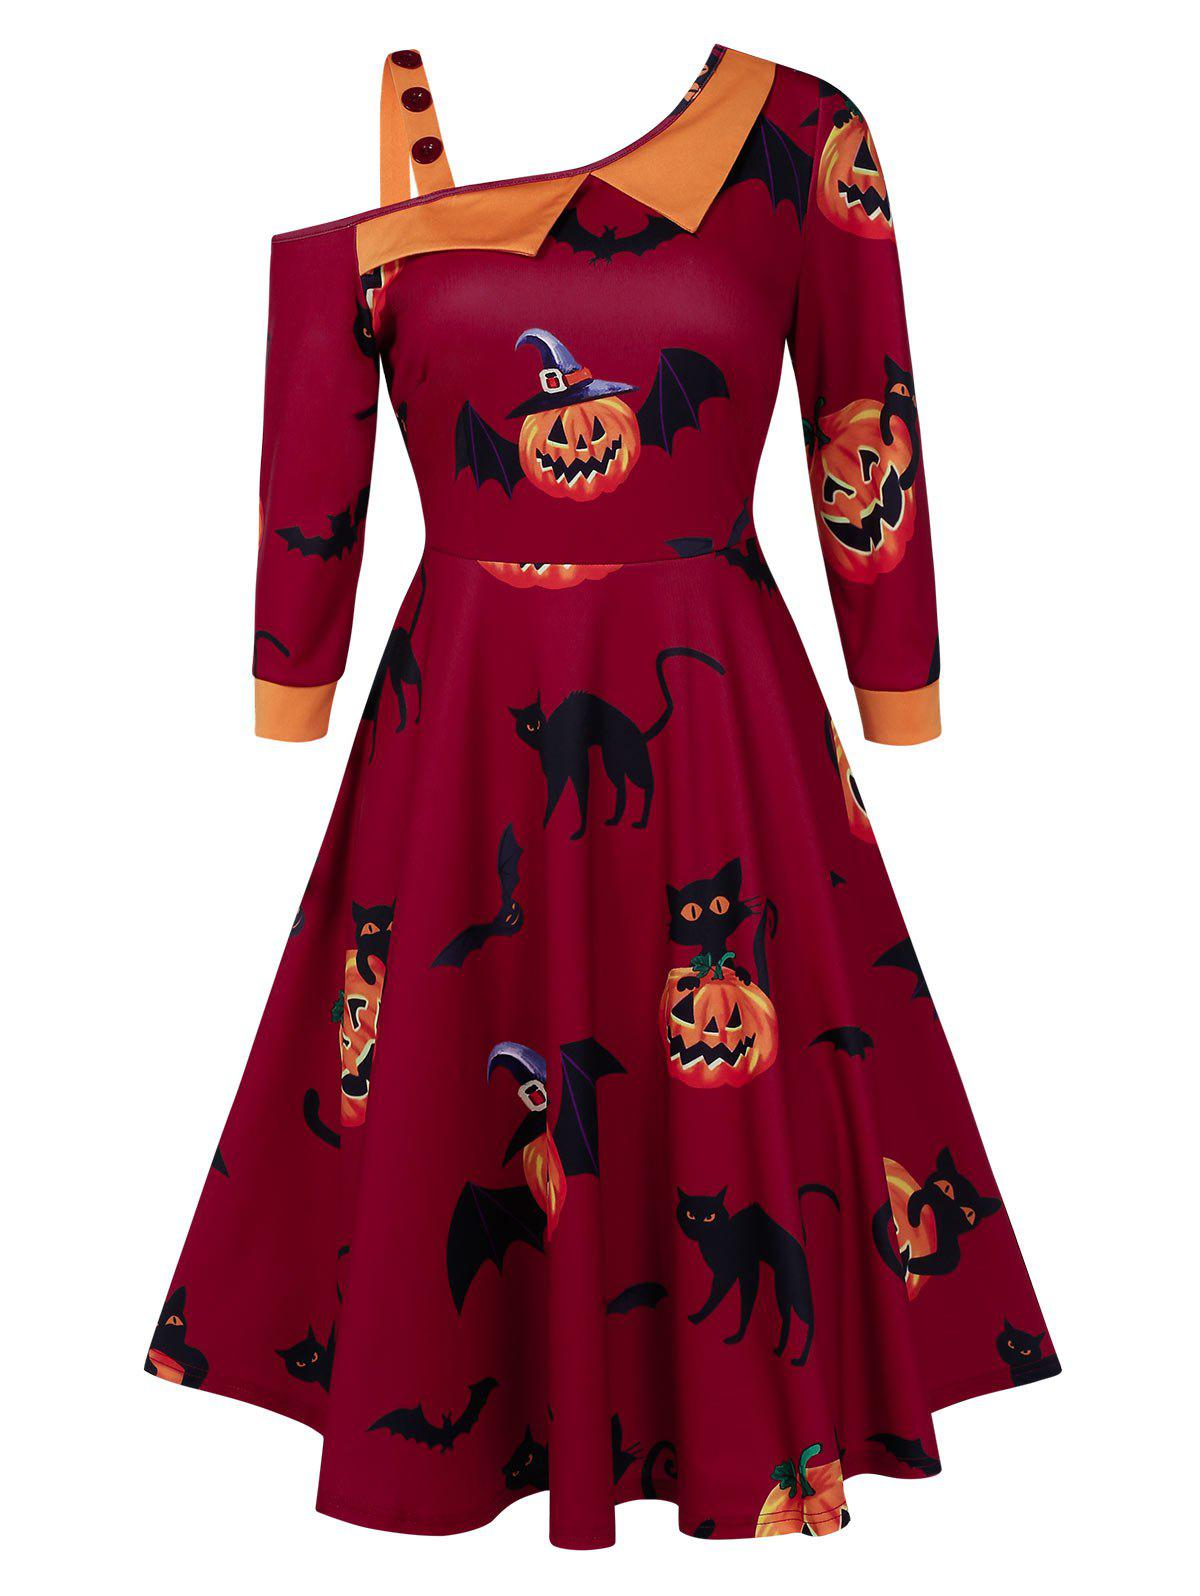 Fashion Pumpkin Print Skew Collar Fit And Flare Halloween Dress